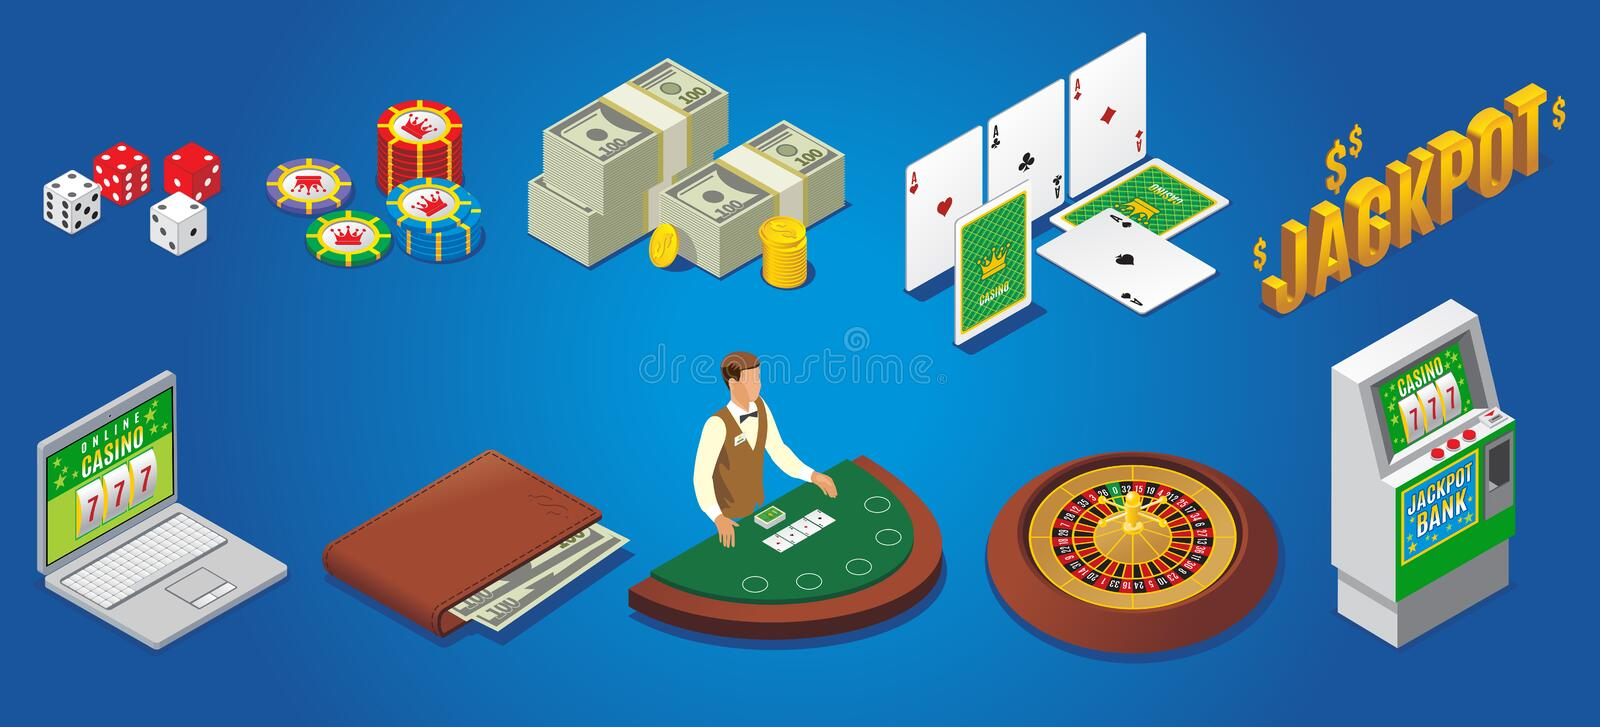 Isometric Casino Icons Set. With dice poker chips money playing cards jackpot online gambling wallet croupier roulette slot machine vector illustration vector illustration